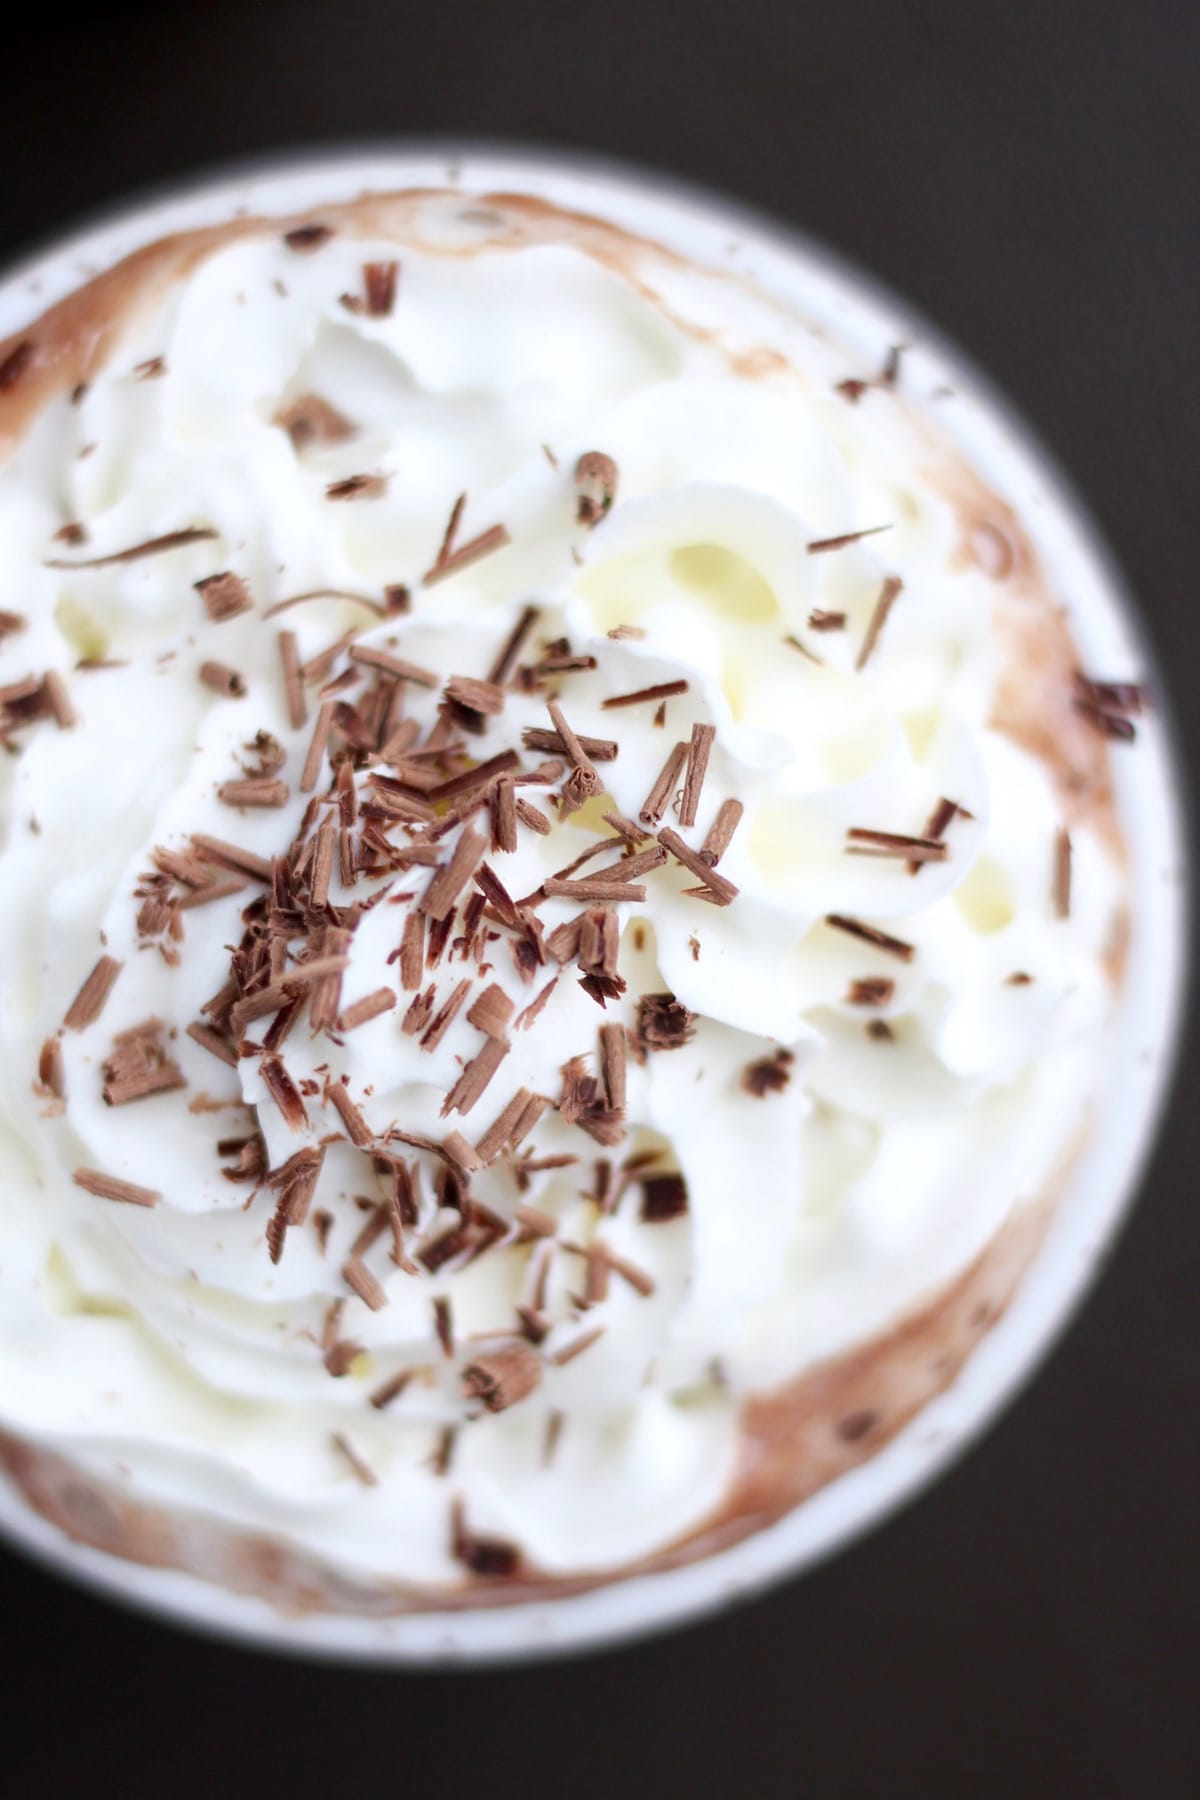 chocolate shavings on top of whipped cream